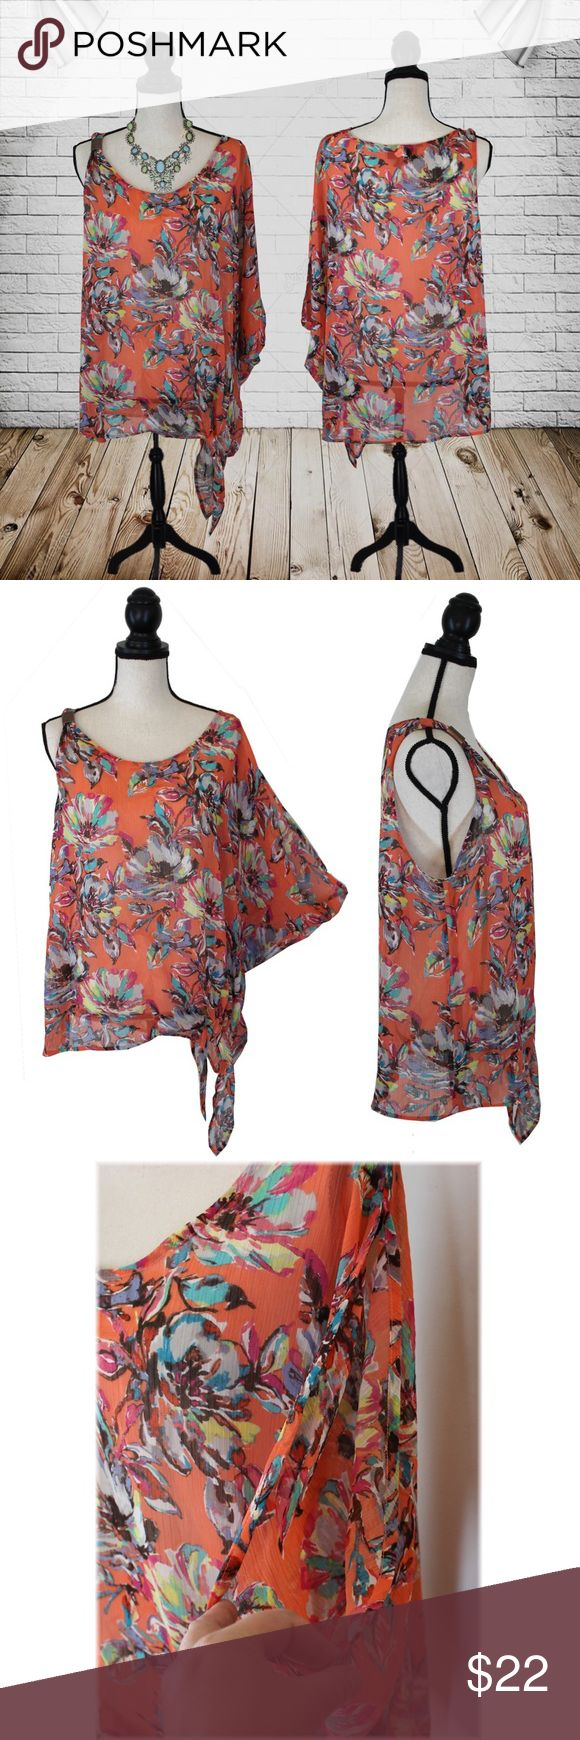 """""""Plus"""" Lane Bryant Batwing/Open Shoulder Top What a sexy and fun shirt!   * Colors - Black, white, orange, blue, pink, purple, green, yellow  * One side strap is thin and has a bronze detailed piece * One side has a batwing and open shoulder * Ties in front on side  * Rather sheer- you will want to wear tank underneath  * Not much stretch  * 100% polyester   MEASUREMENTS (Approximate)  * Armpit to pit 25"""" * Waist & Hips 54"""" * Length 28""""  This top by Lane Bryant is brand new without tags and…"""